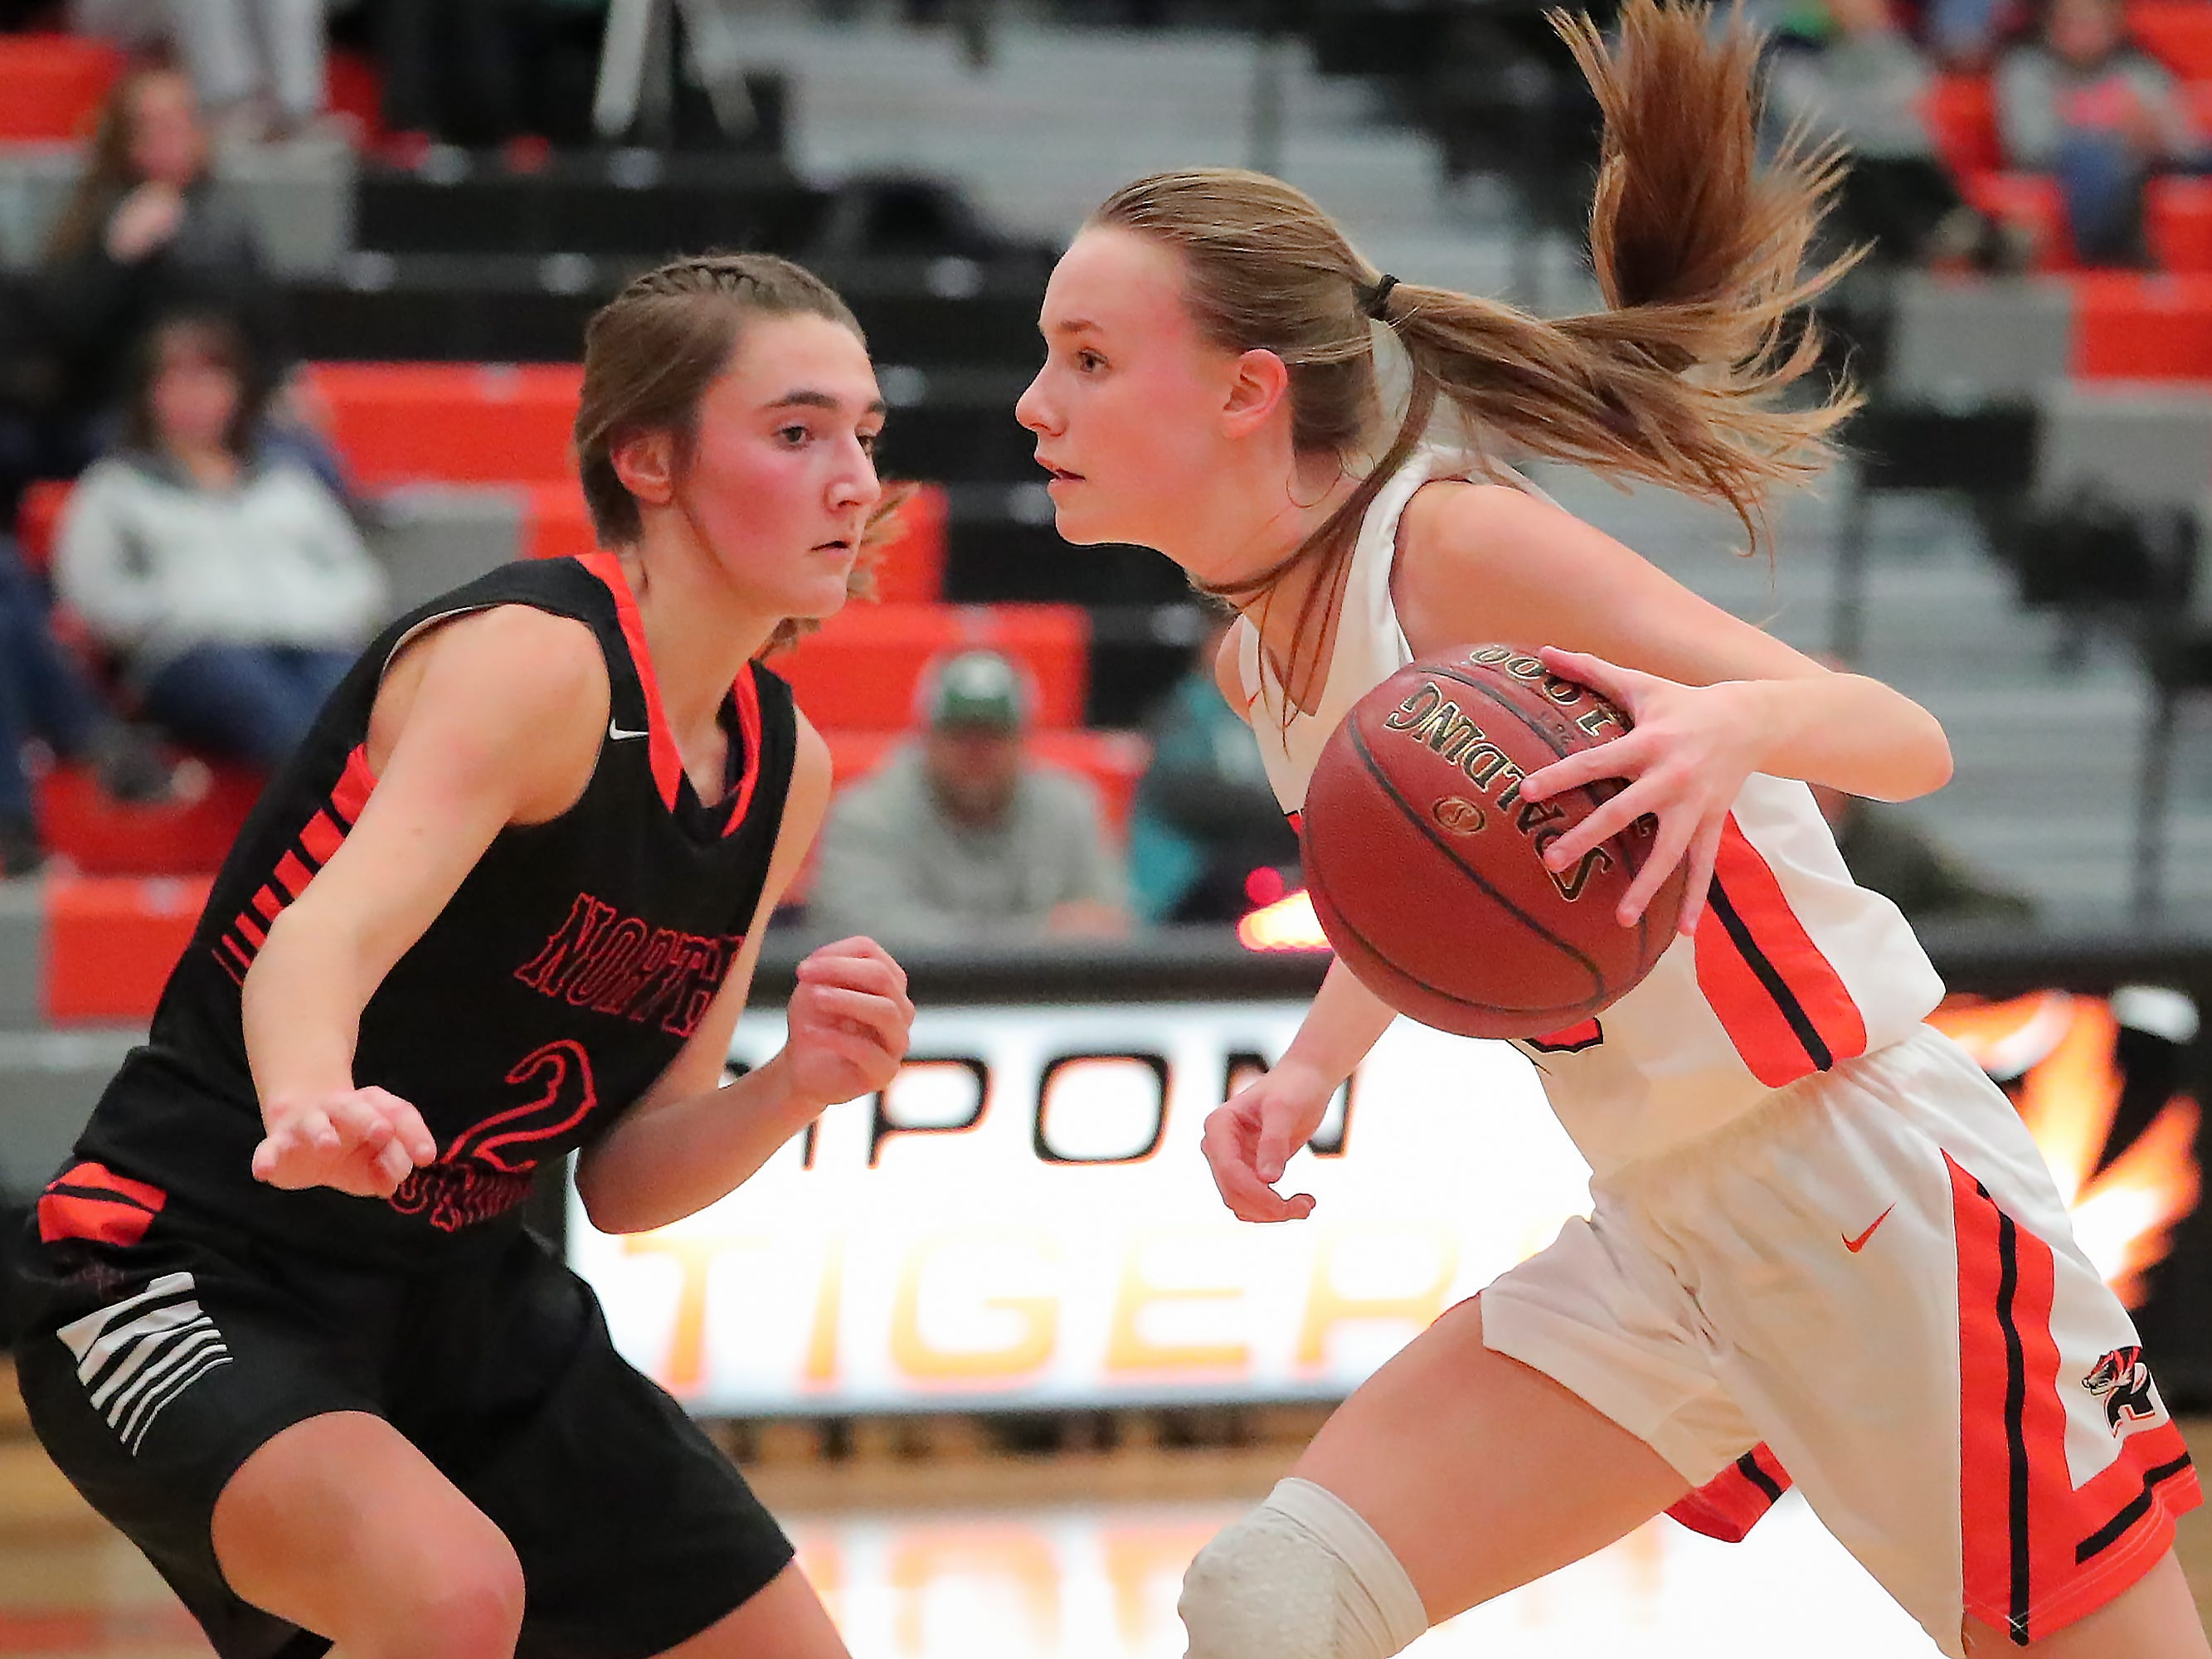 Kerstin Sauerbrei (23) of Ripon tries to get around Ashley Now (2) of North Fond du Lac. The Ripon Tigers hosted the North Fond du Lac Orioles in a non-conference basketball game Thursday evening, November 15, 2018.